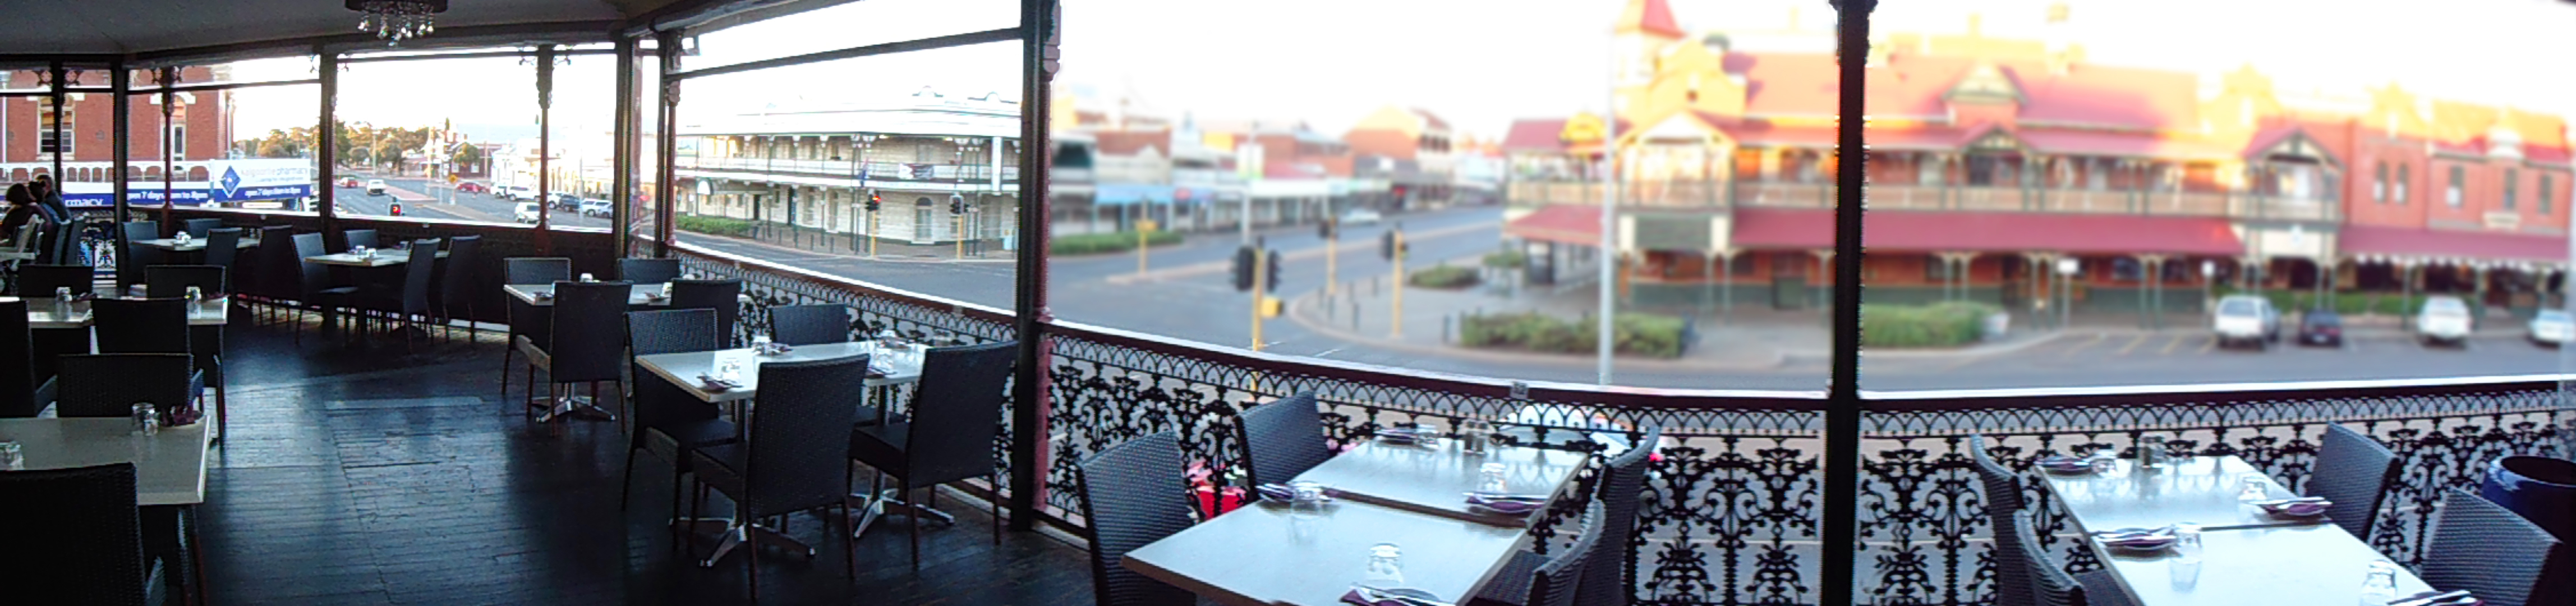 Balcony bar and restaurant the palace hotel for Balcony restaurant and bar